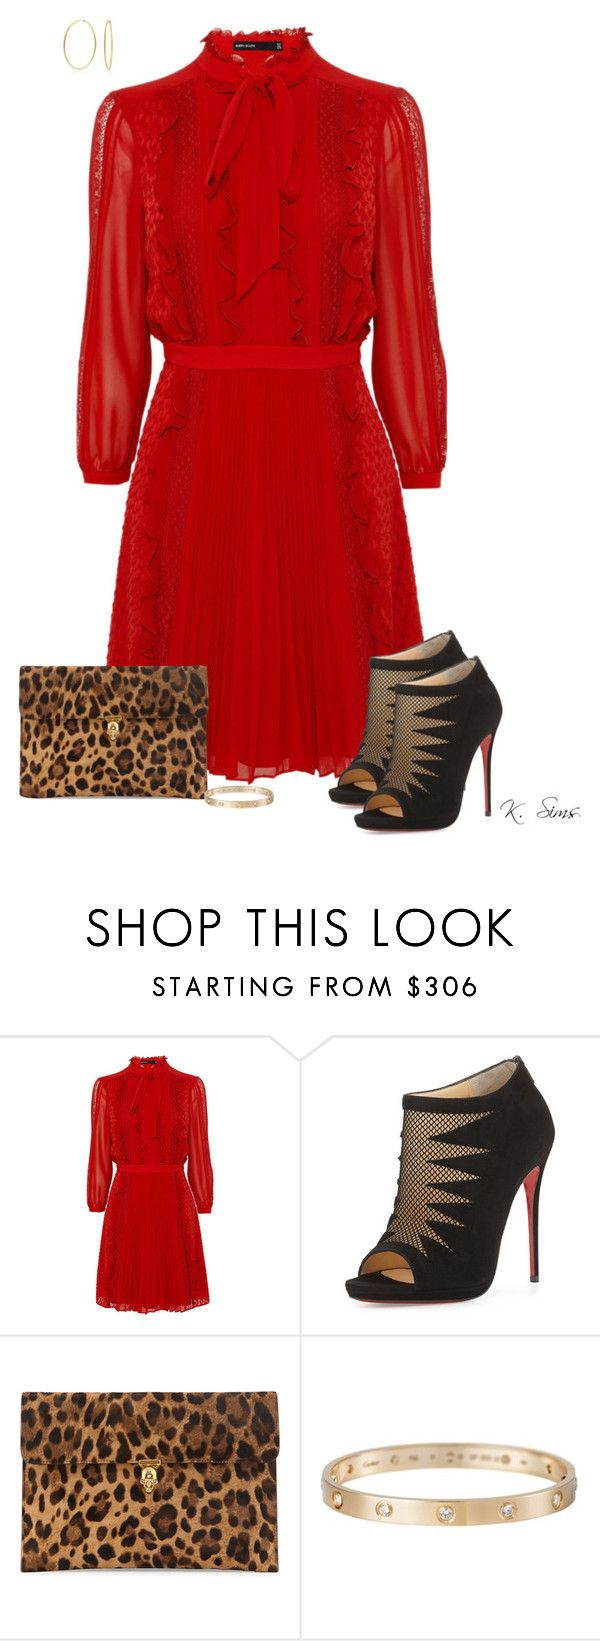 """Vintage meets modern"" by ksims-1 ❤ liked on Polyvore featuring Christian Louboutin, Alexander McQueen, Cartier, Bling Jewelry, modern and vintage"